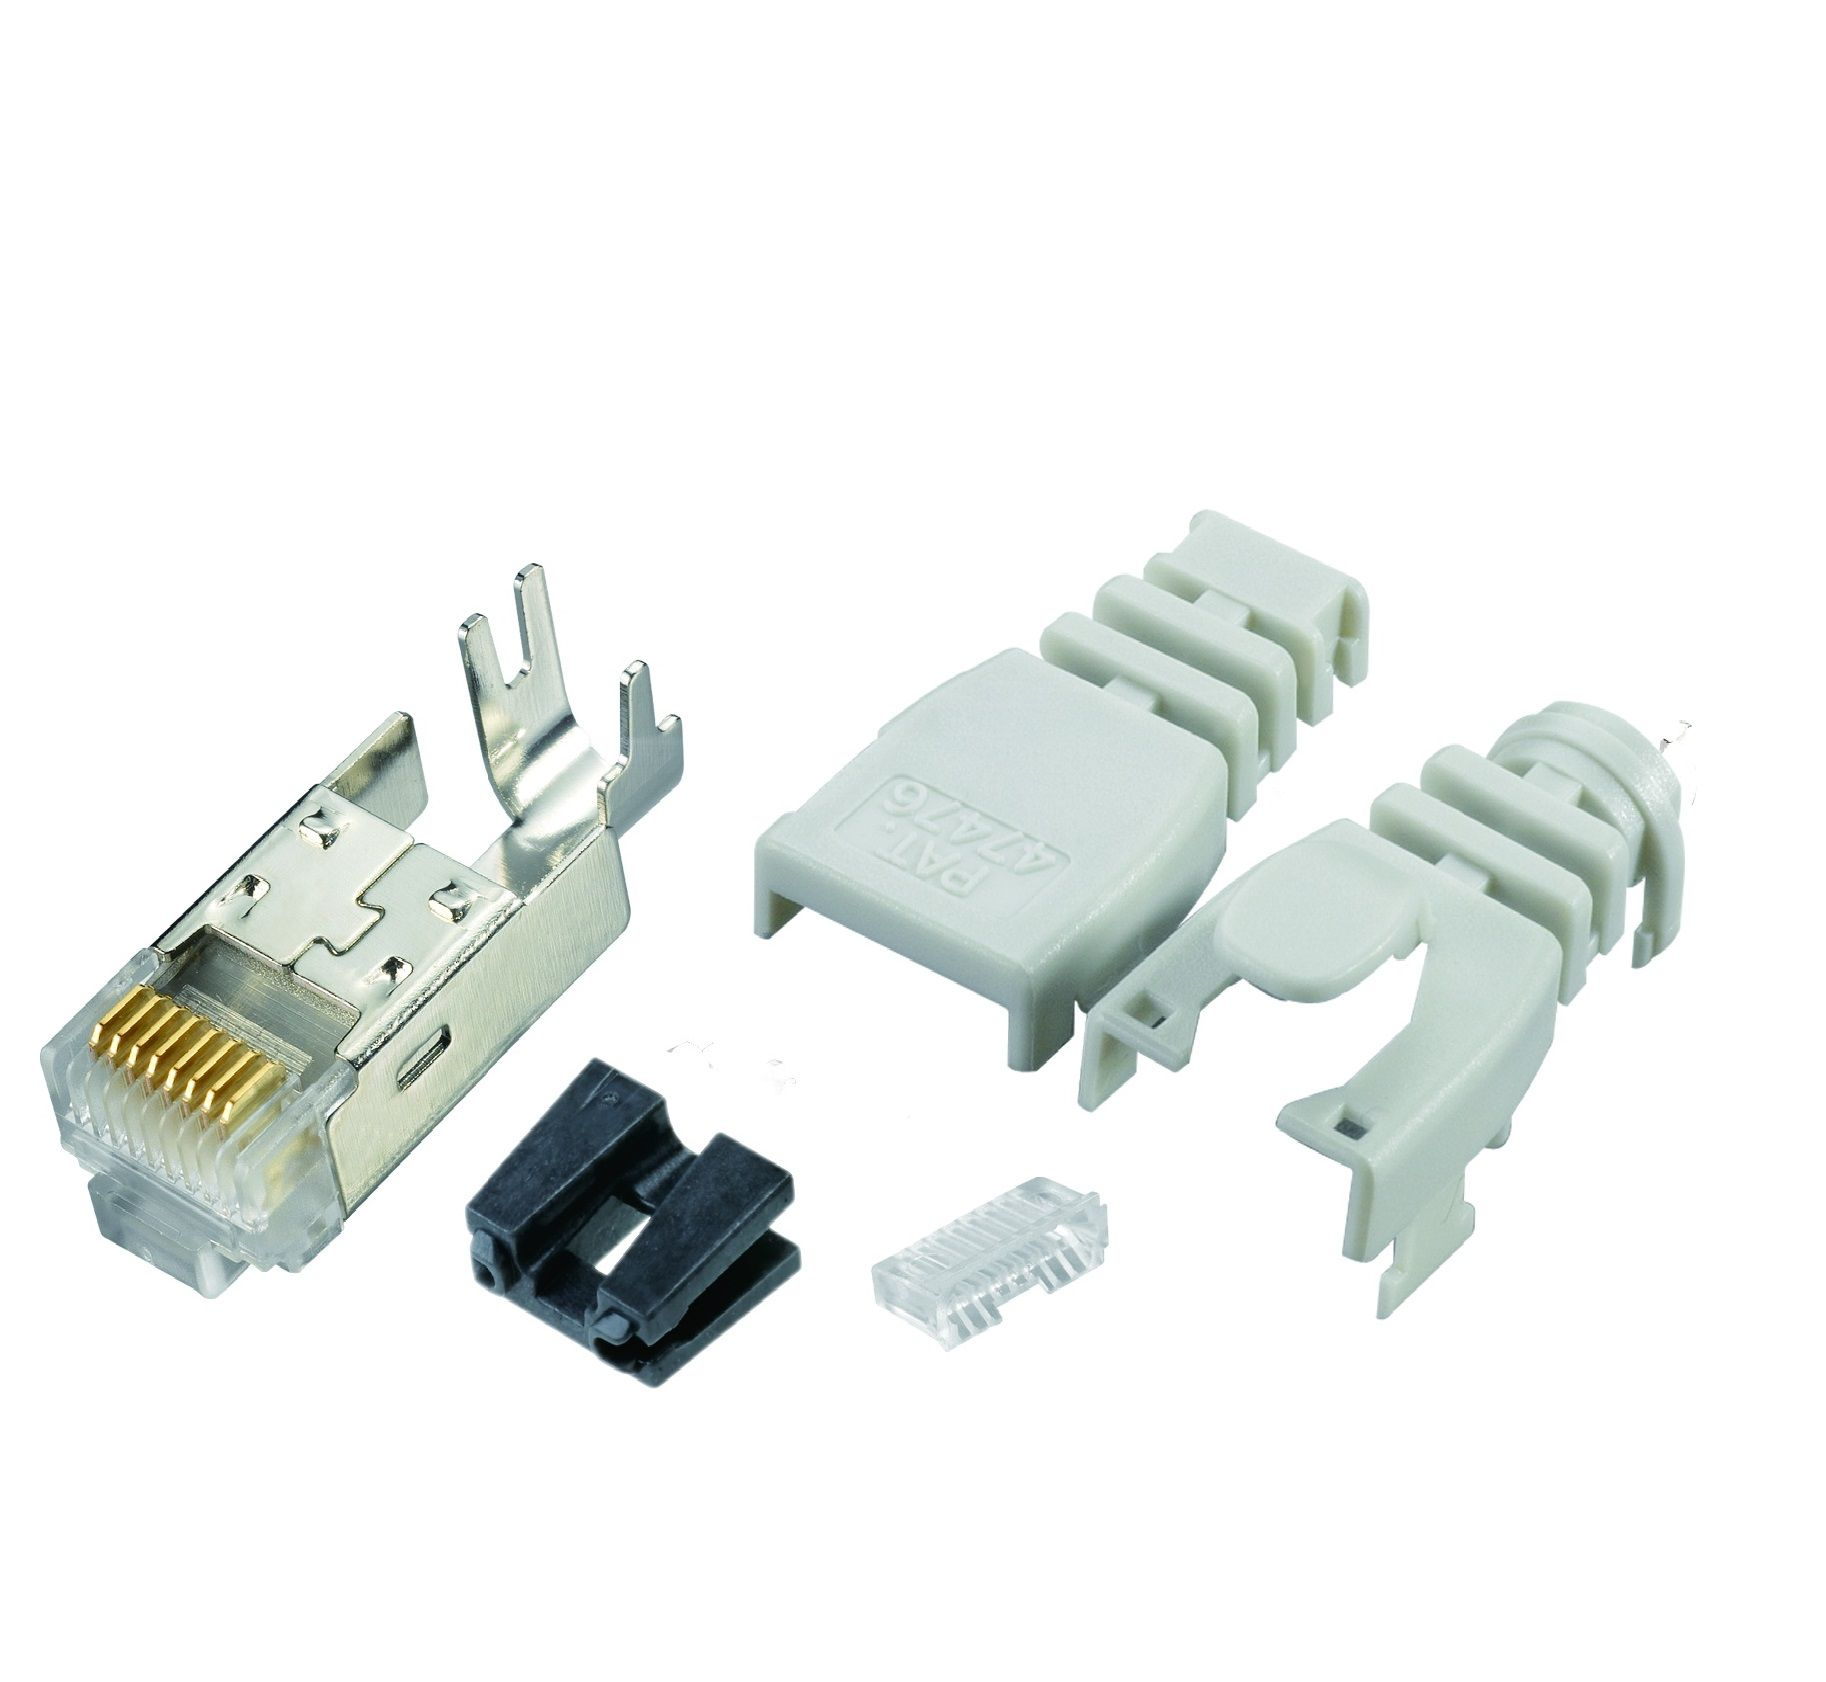 Multi-Piece Type RJ45 Plug for Cat 6 STP Cable - Multi-Piece Type RJ45 Plug for Cat 6 STP Cable